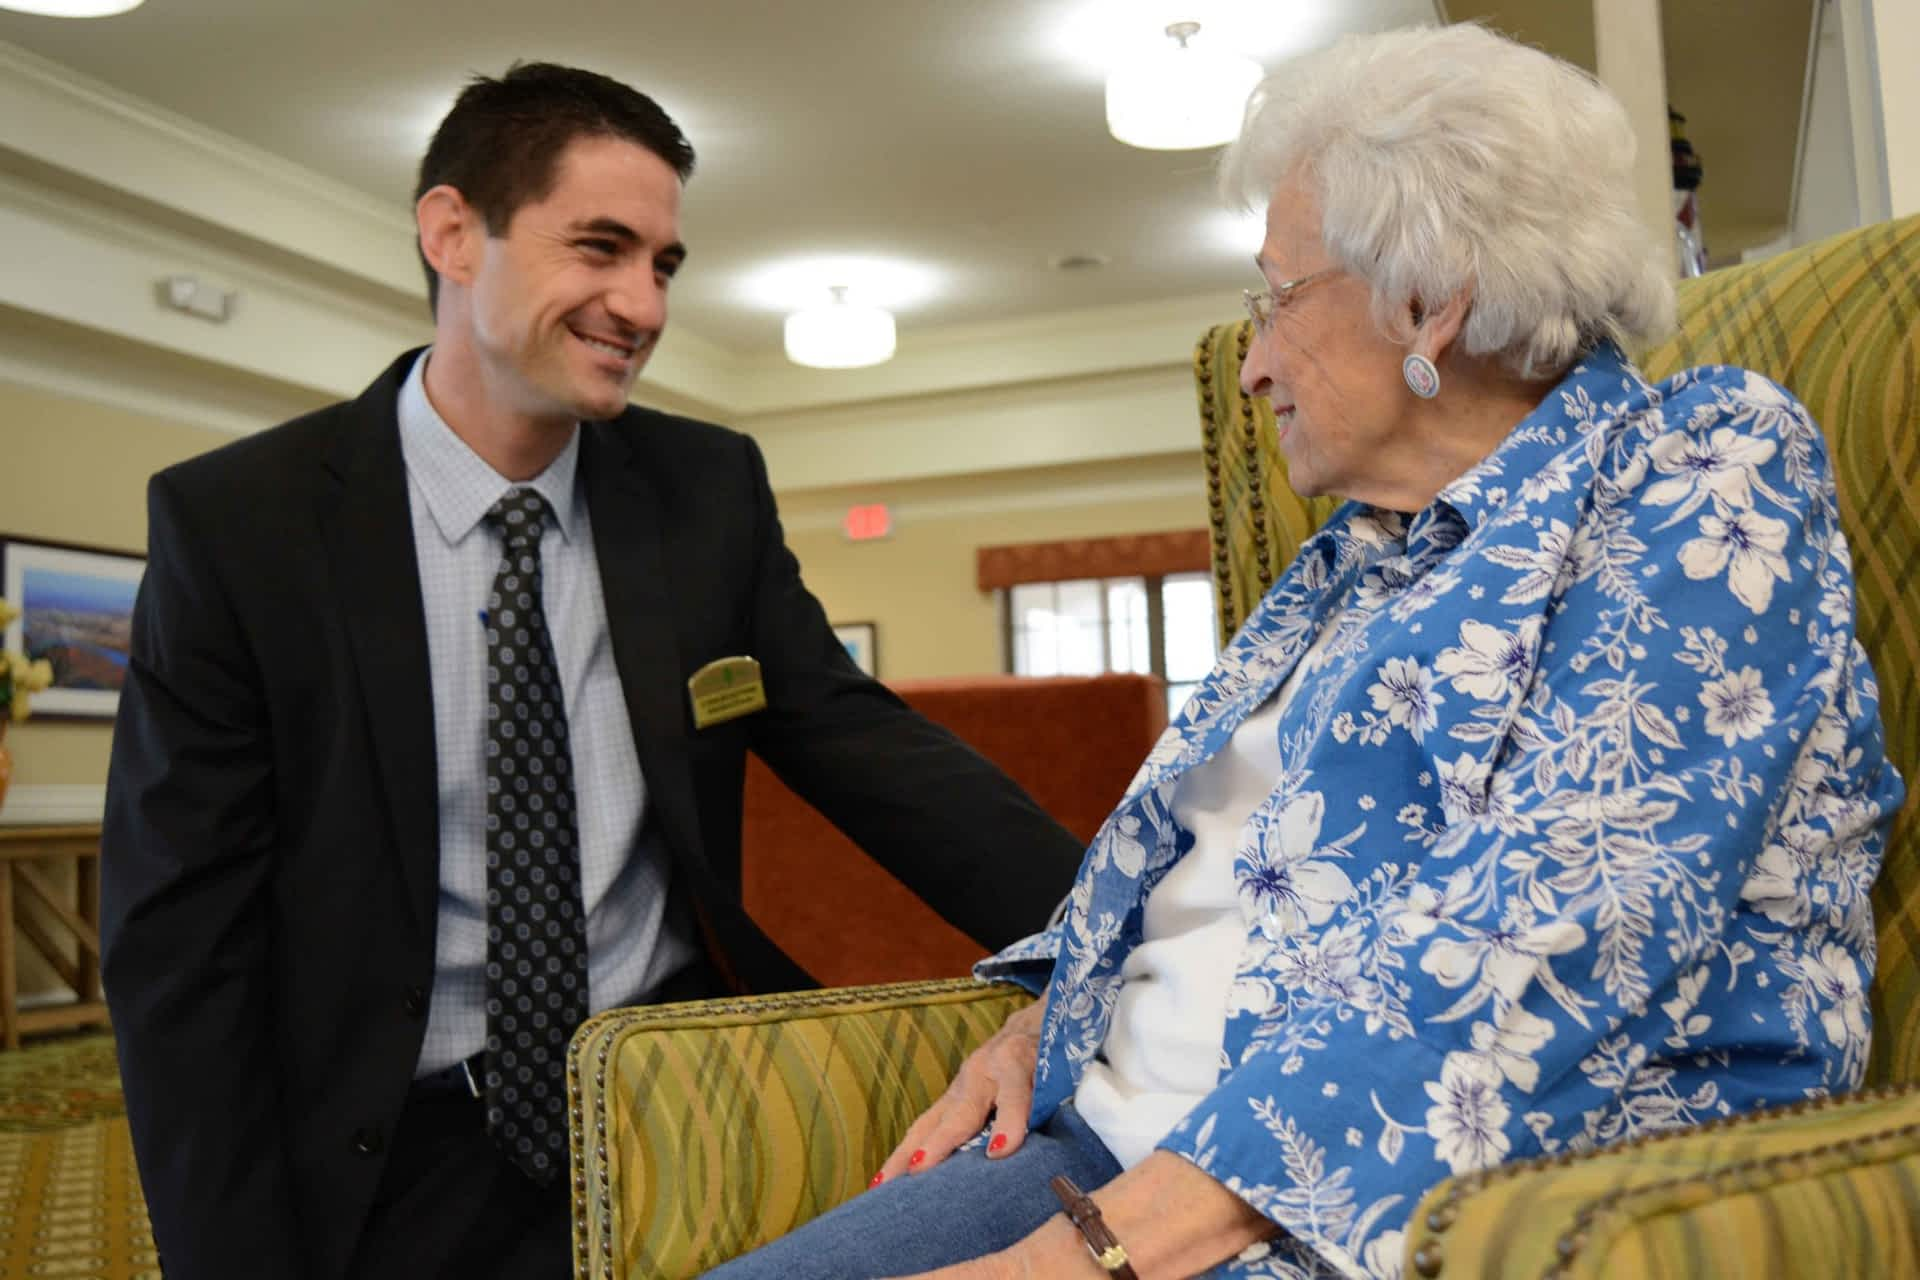 Executive Director at Morning Pointe engaging with resident